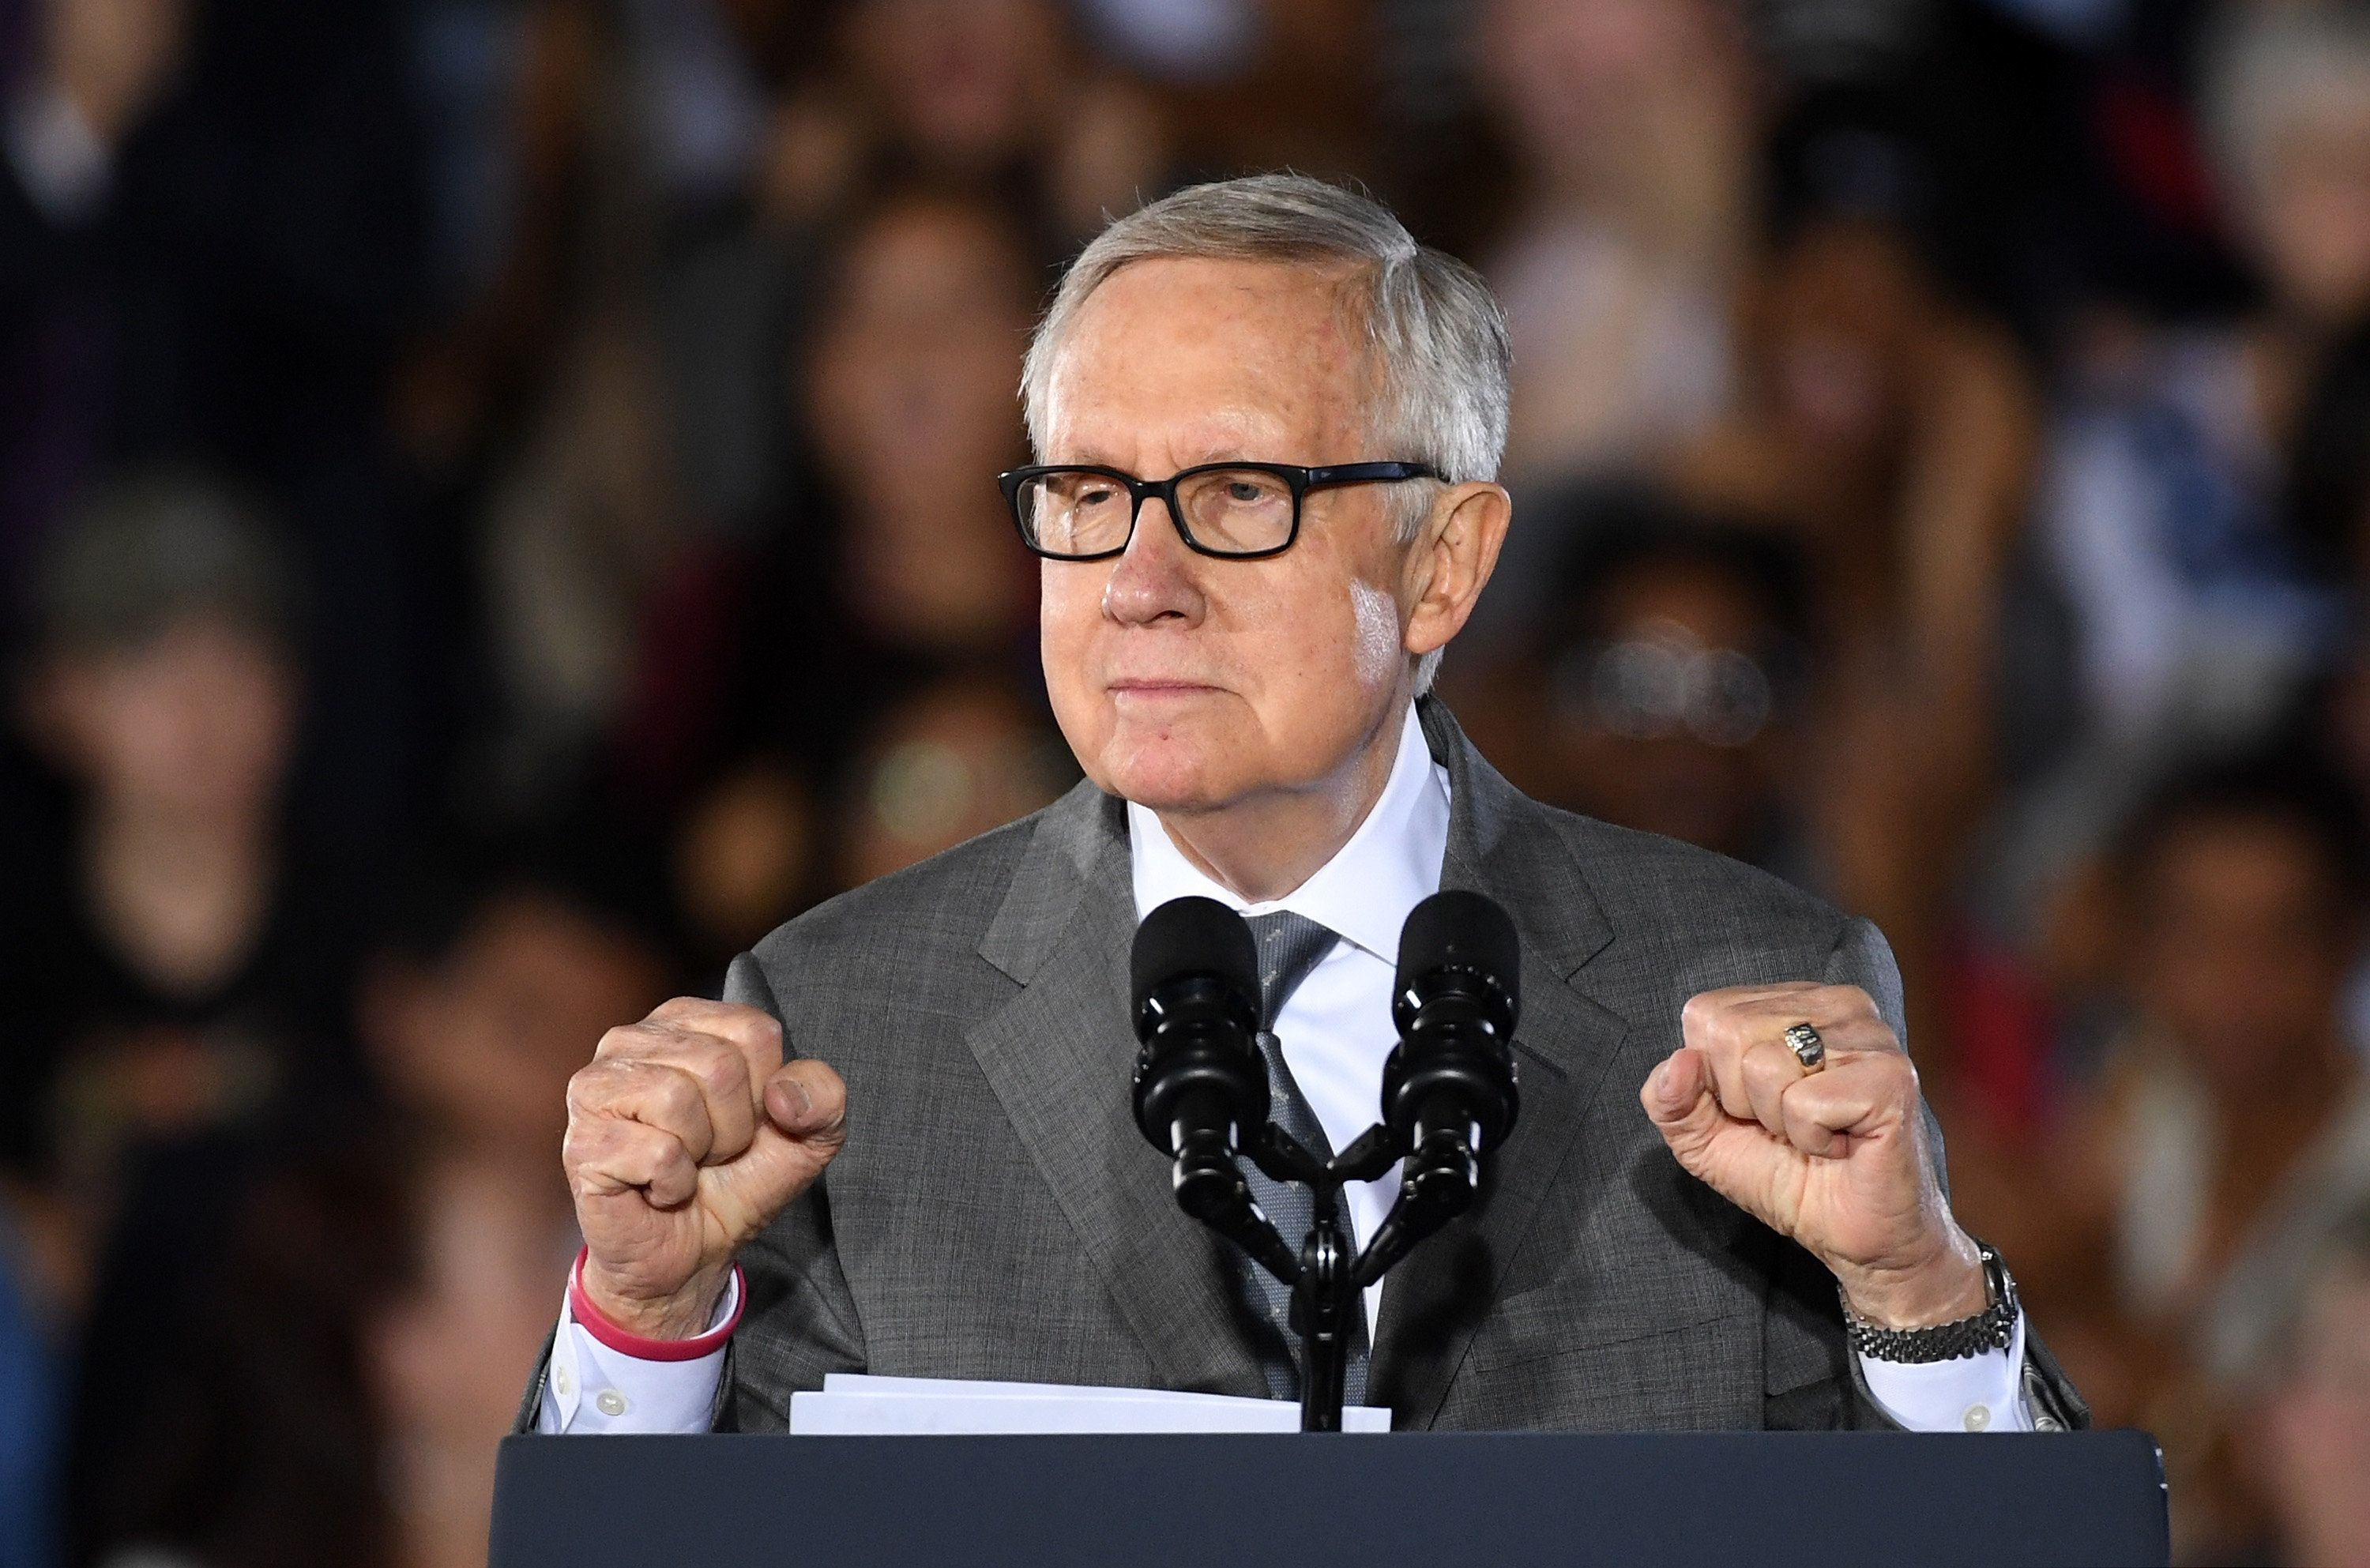 Sen. Harry Reid (D-Nev.), the outgoing Senate Minority Leader, is proud that he made it easier to confirm federal judges and